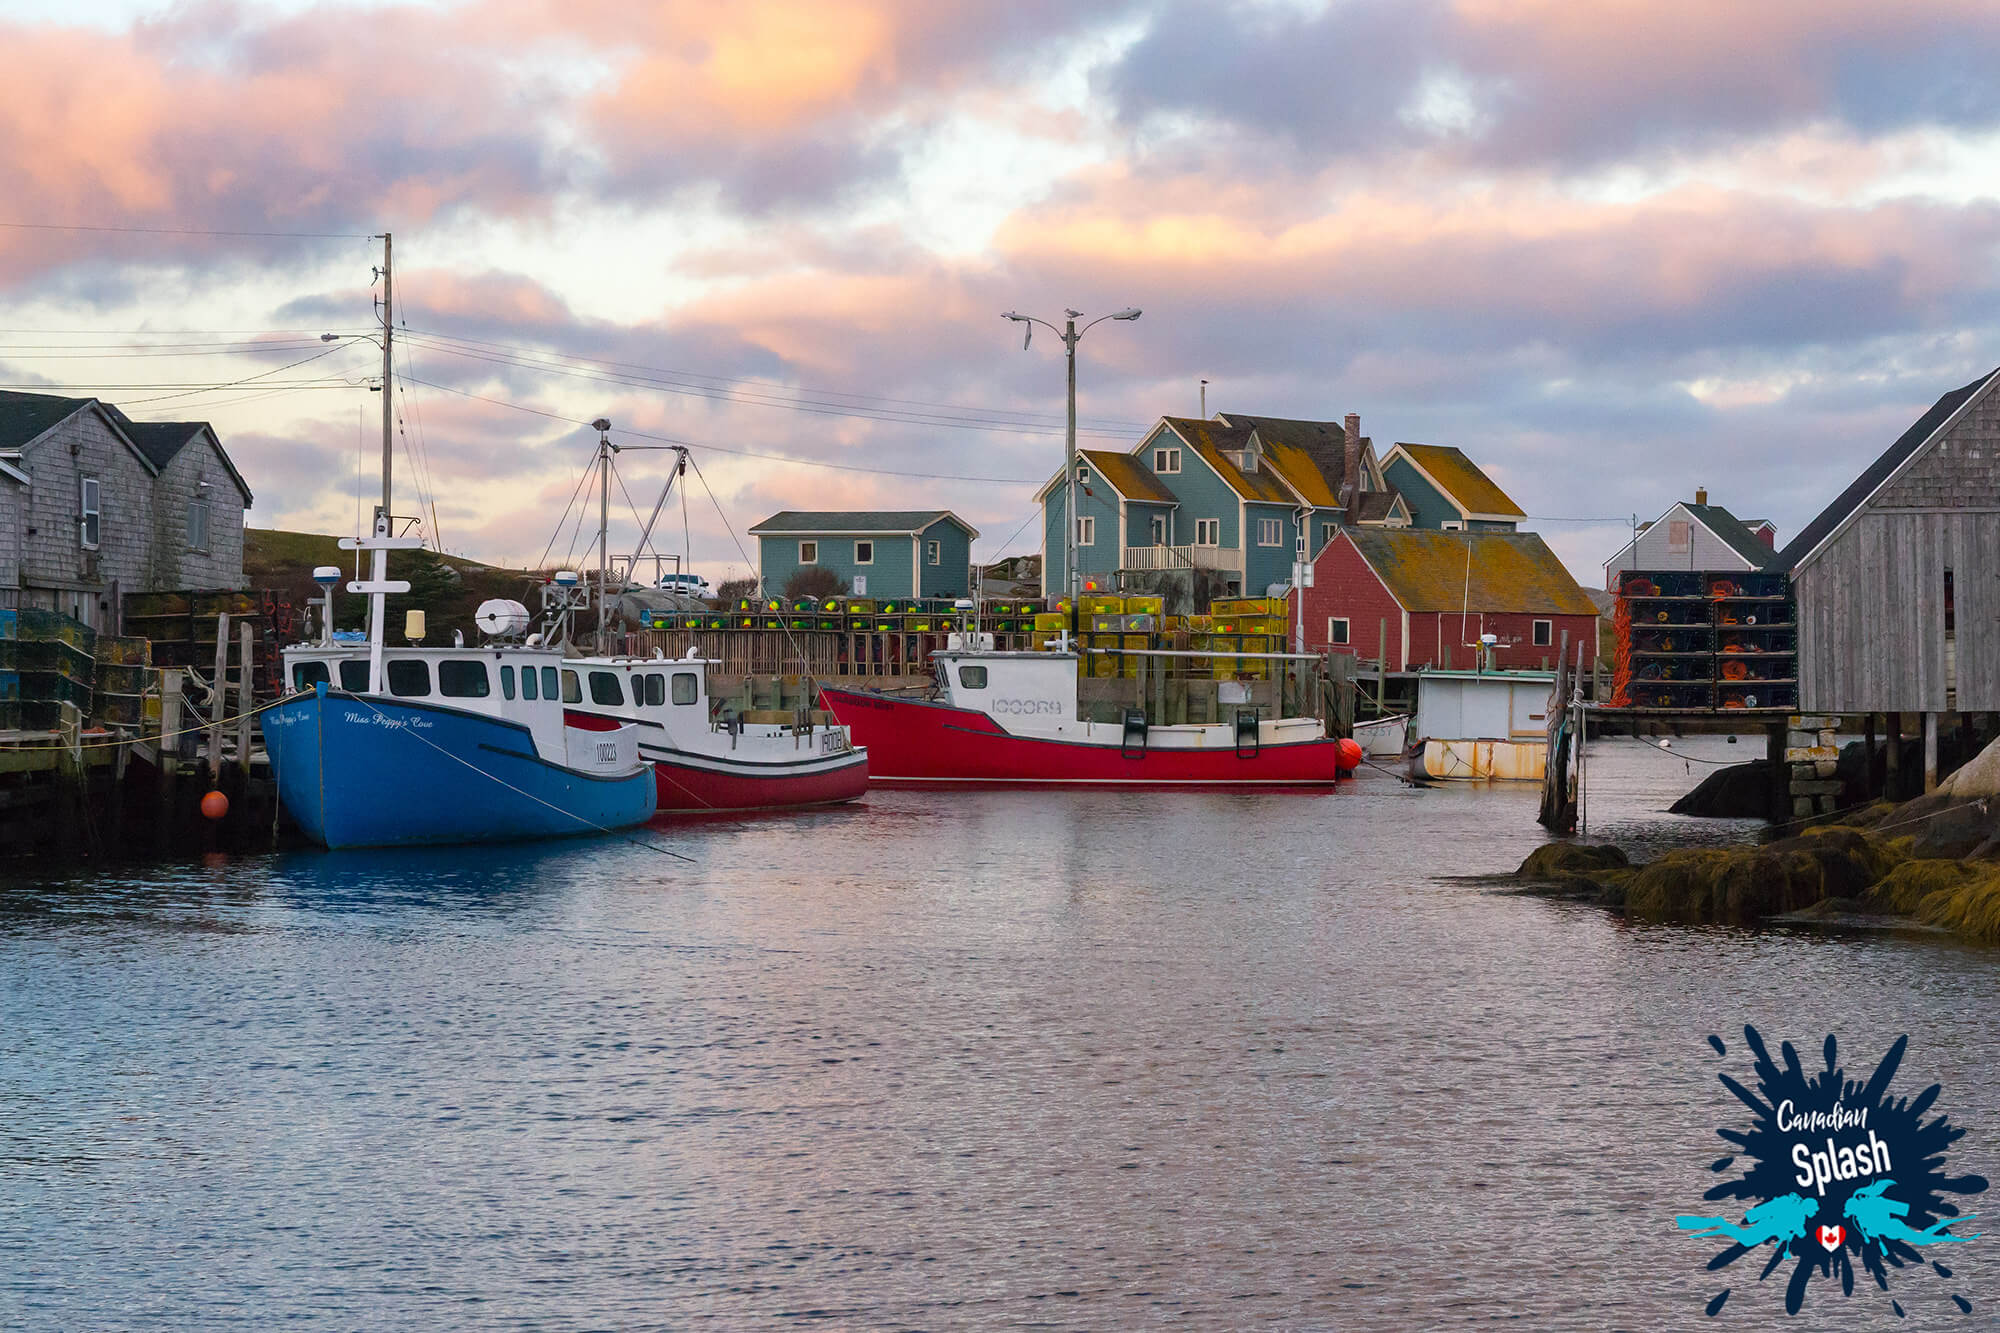 The Boats And Fishing Village Of Peggy's Cove On St Margarets Bay, Halifax, Nova Scotia, Canadian Splash